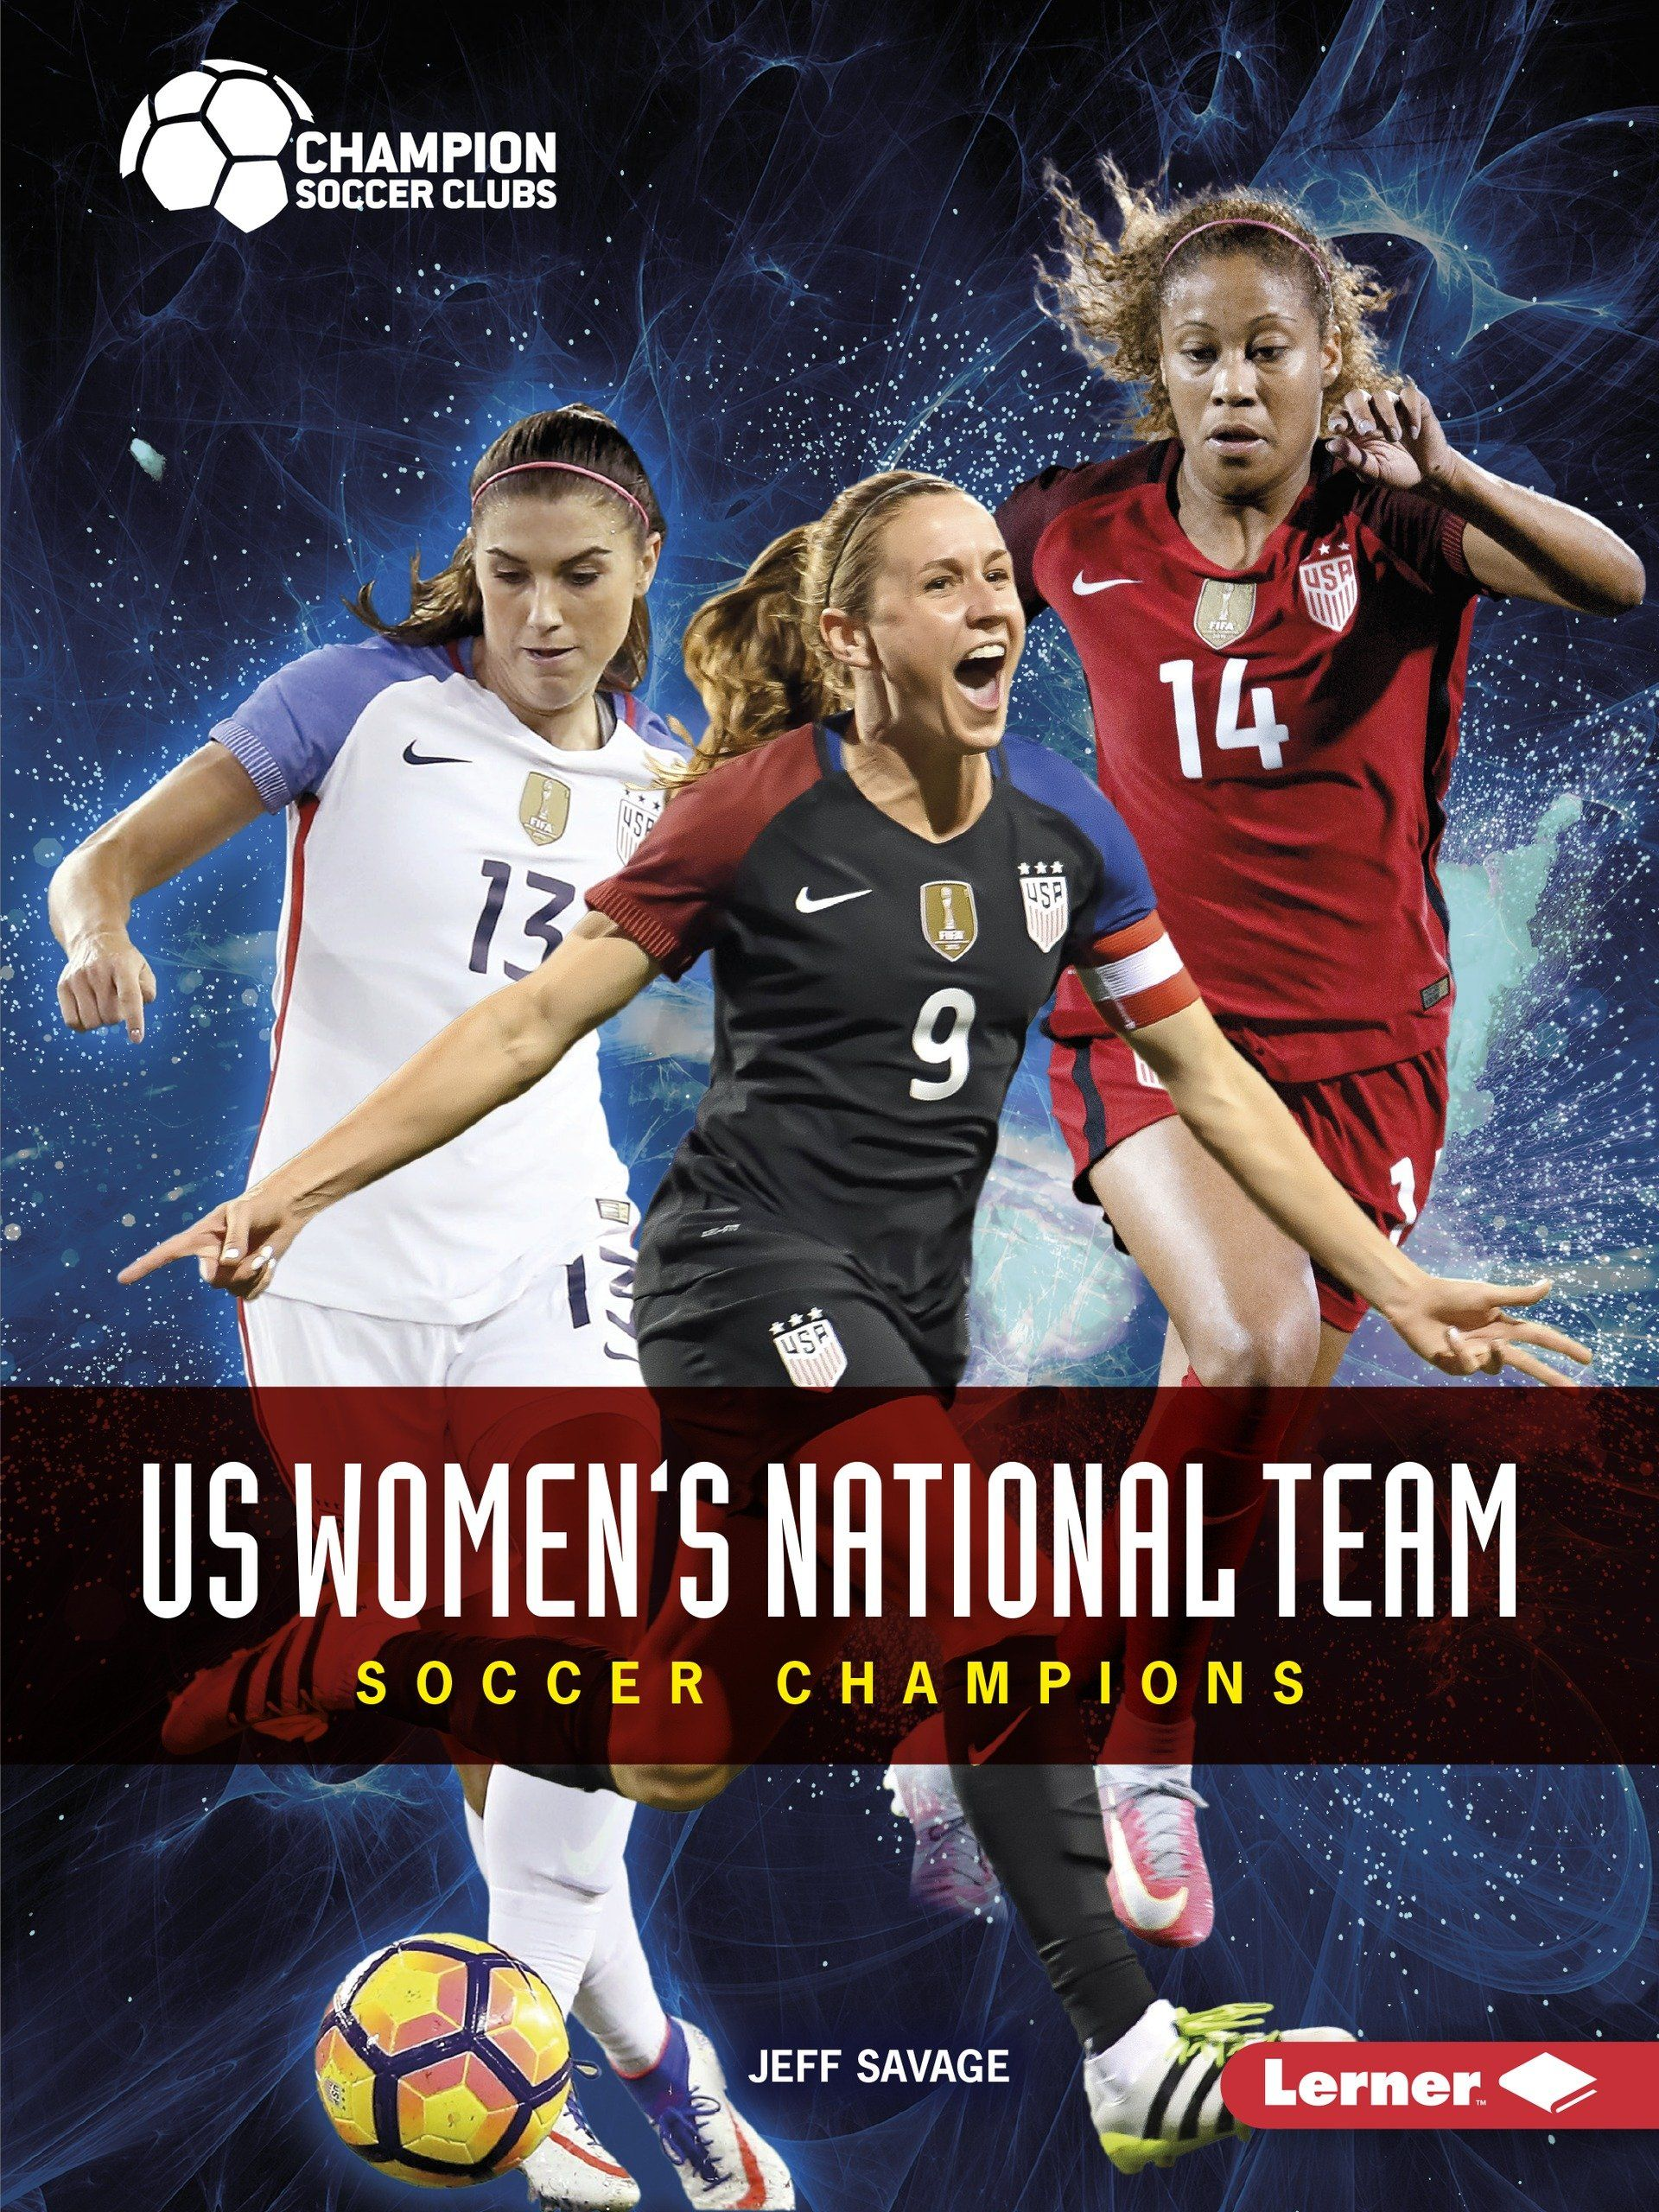 Annotation The Us Women S National Team Has Won More Olympic Gold Medals And Women S World Cup Titles Than Any Other Team Learn H In 2020 Soccer Club Soccer Champion